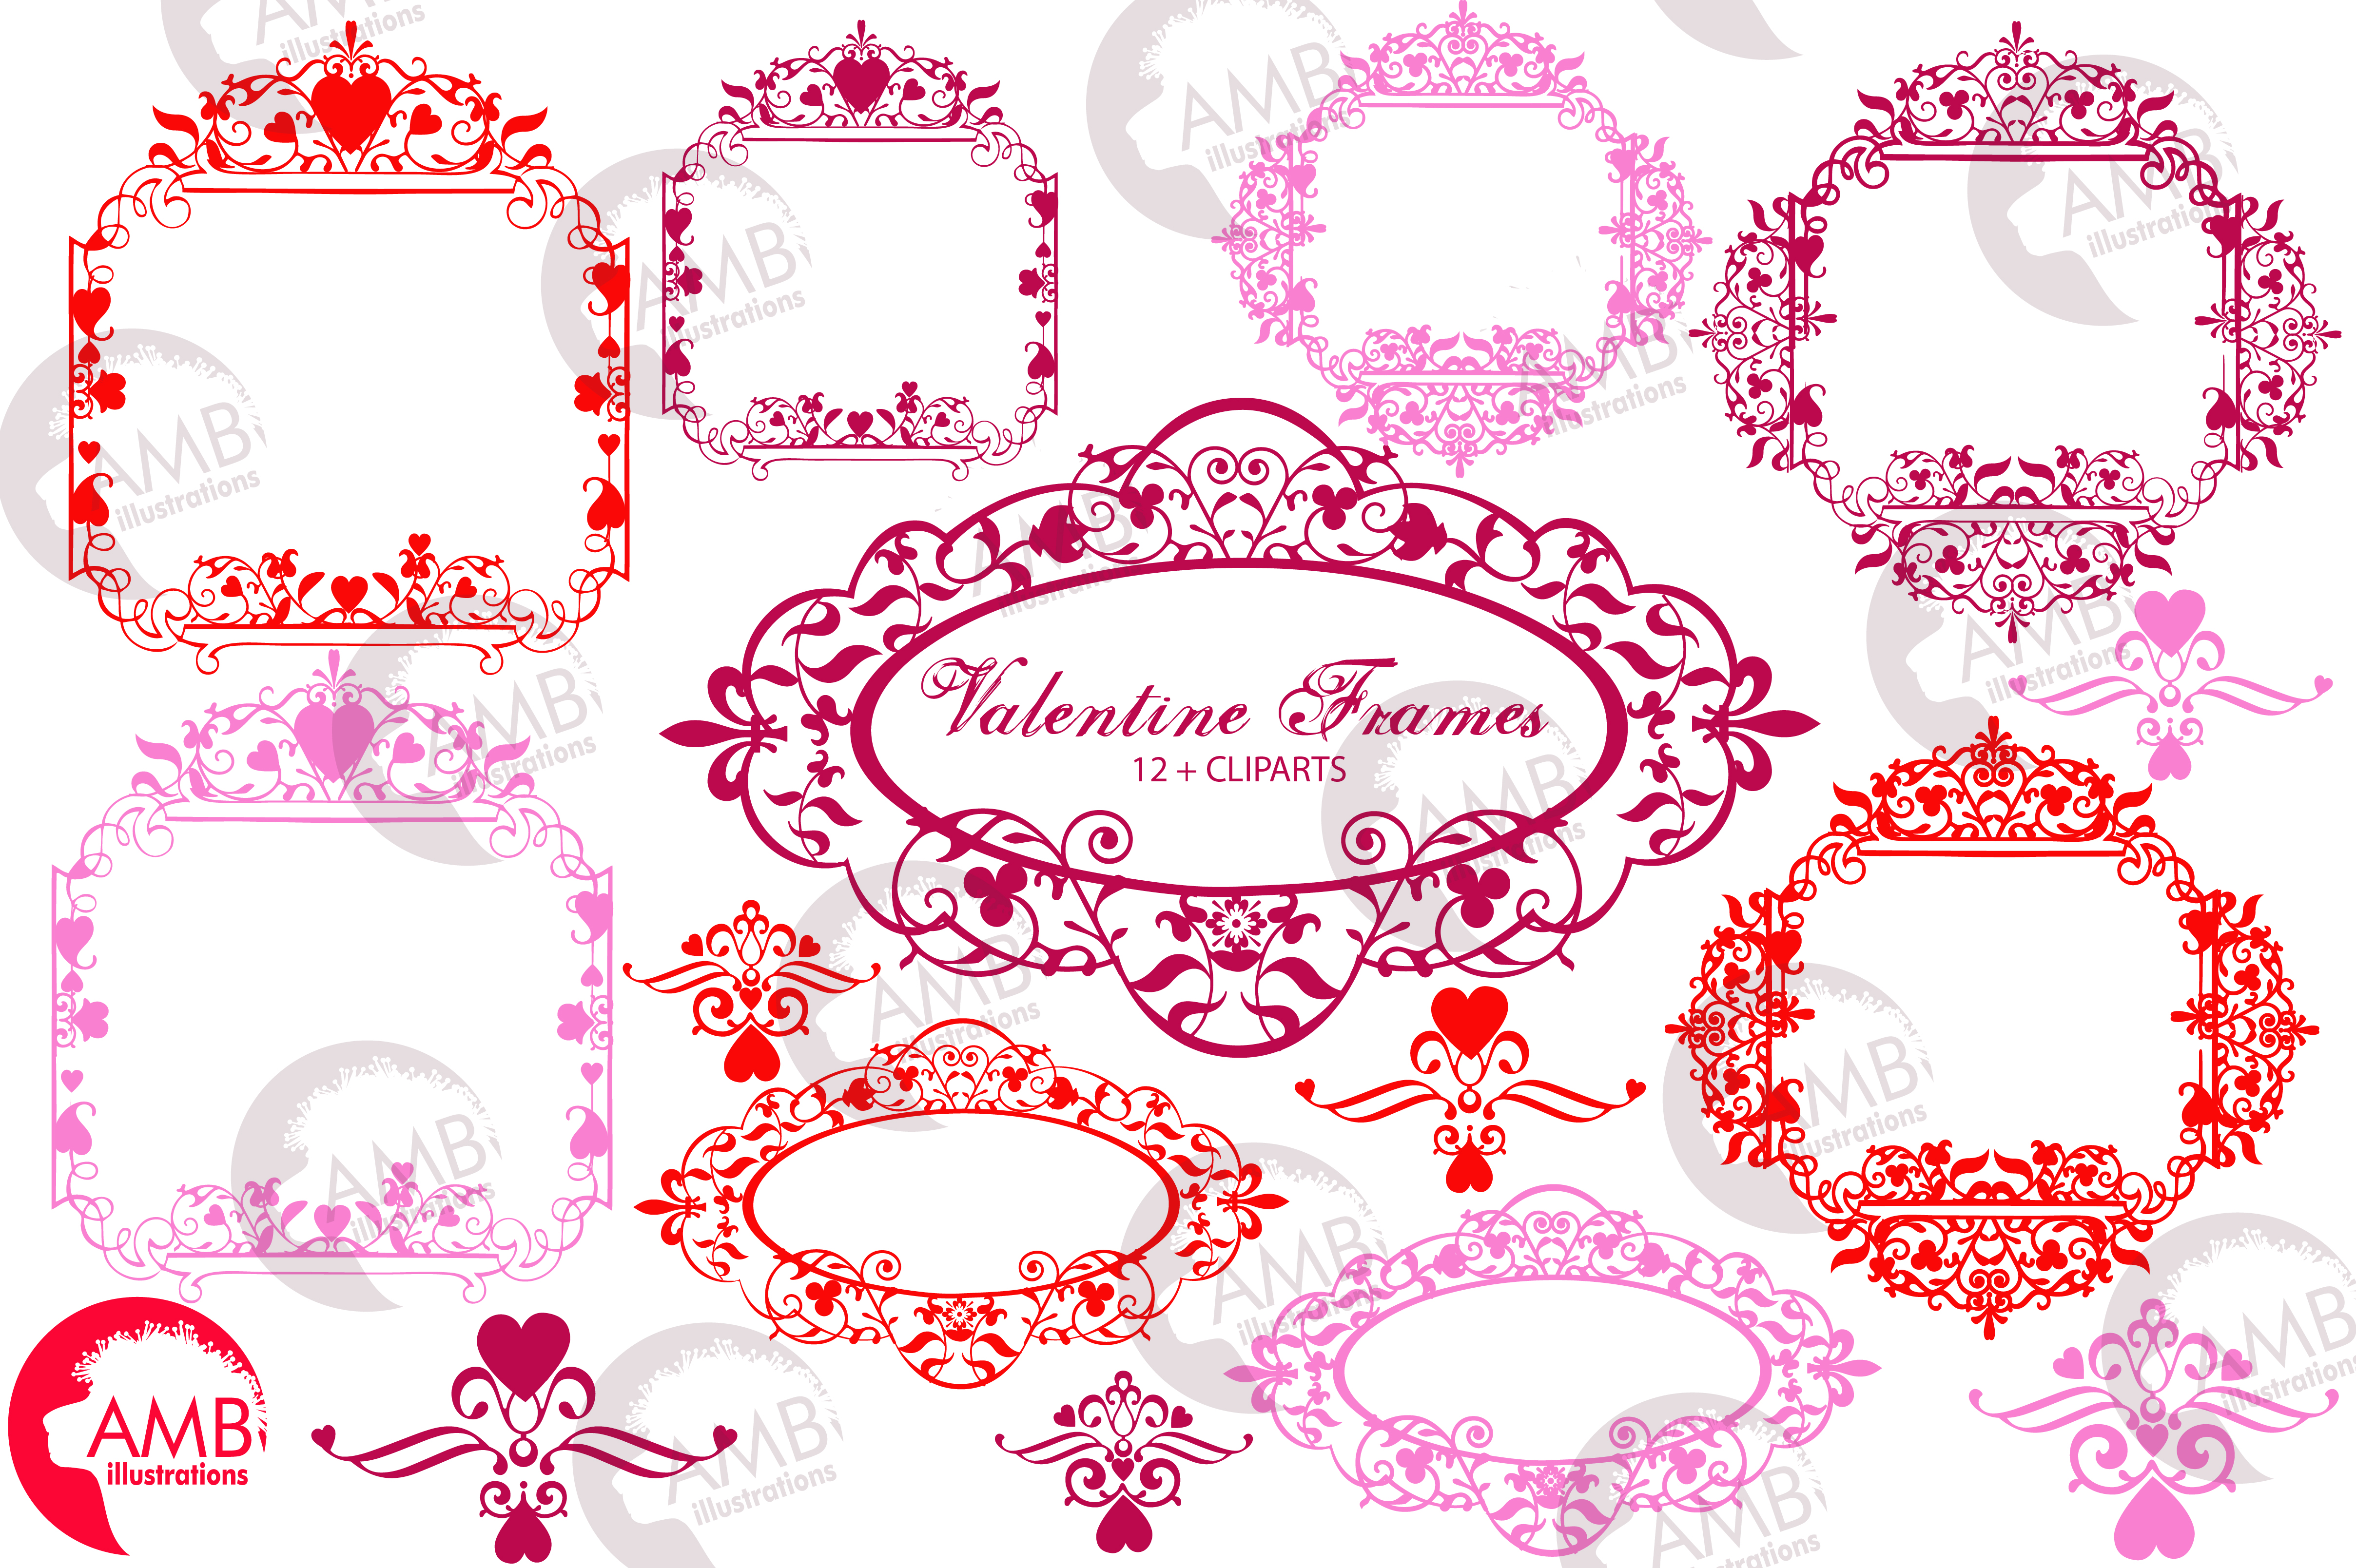 Download Free Romantic Valentines Frame Clipart Graphic By Ambillustrations Creative Fabrica for Cricut Explore, Silhouette and other cutting machines.